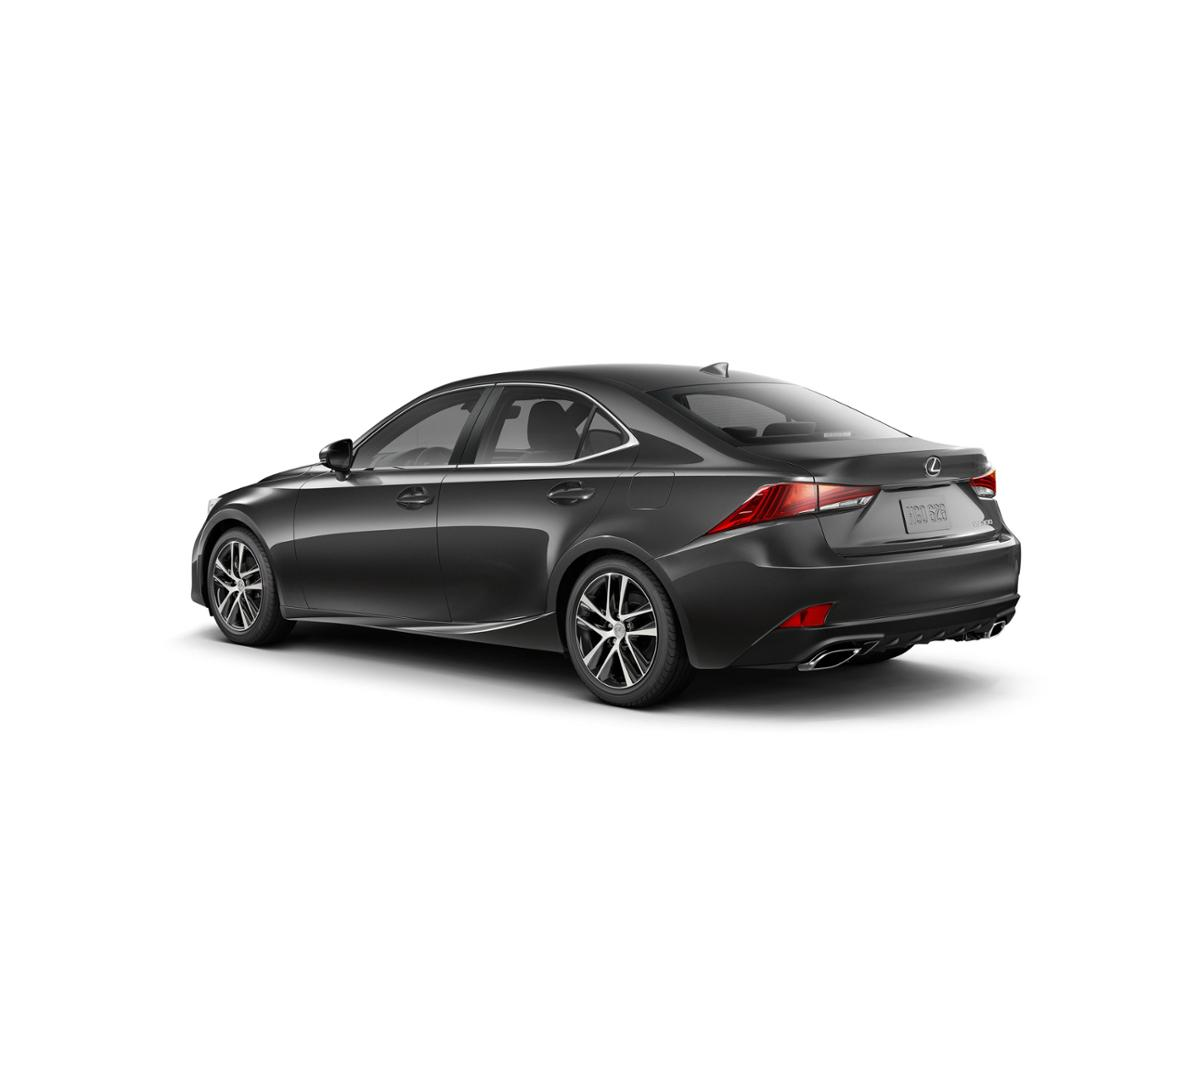 2019 Lexus IS 300 For Sale In Pembroke Pines